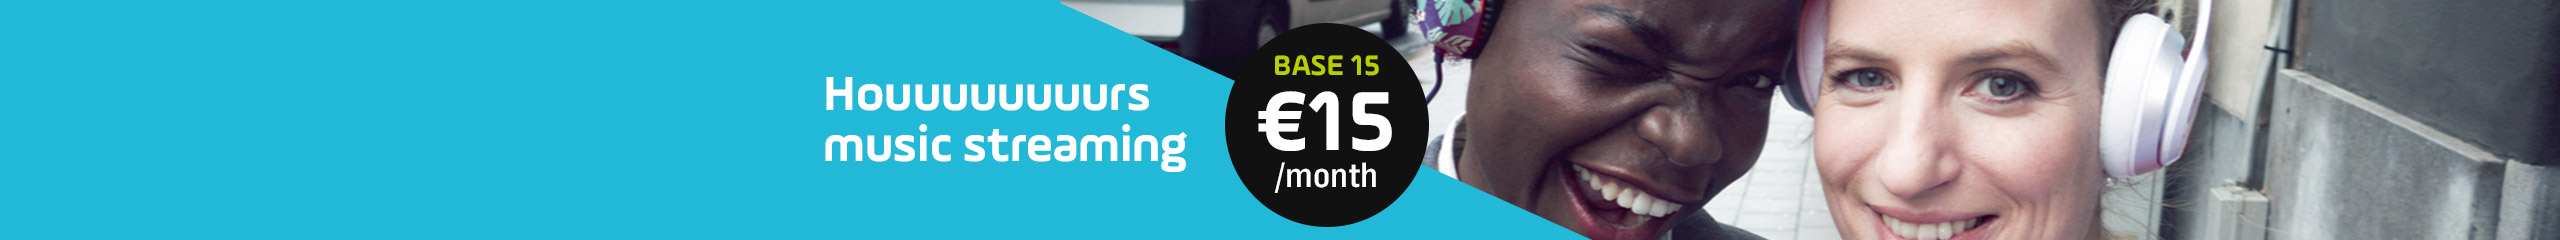 BASE 15 monthly plan - € 15/month